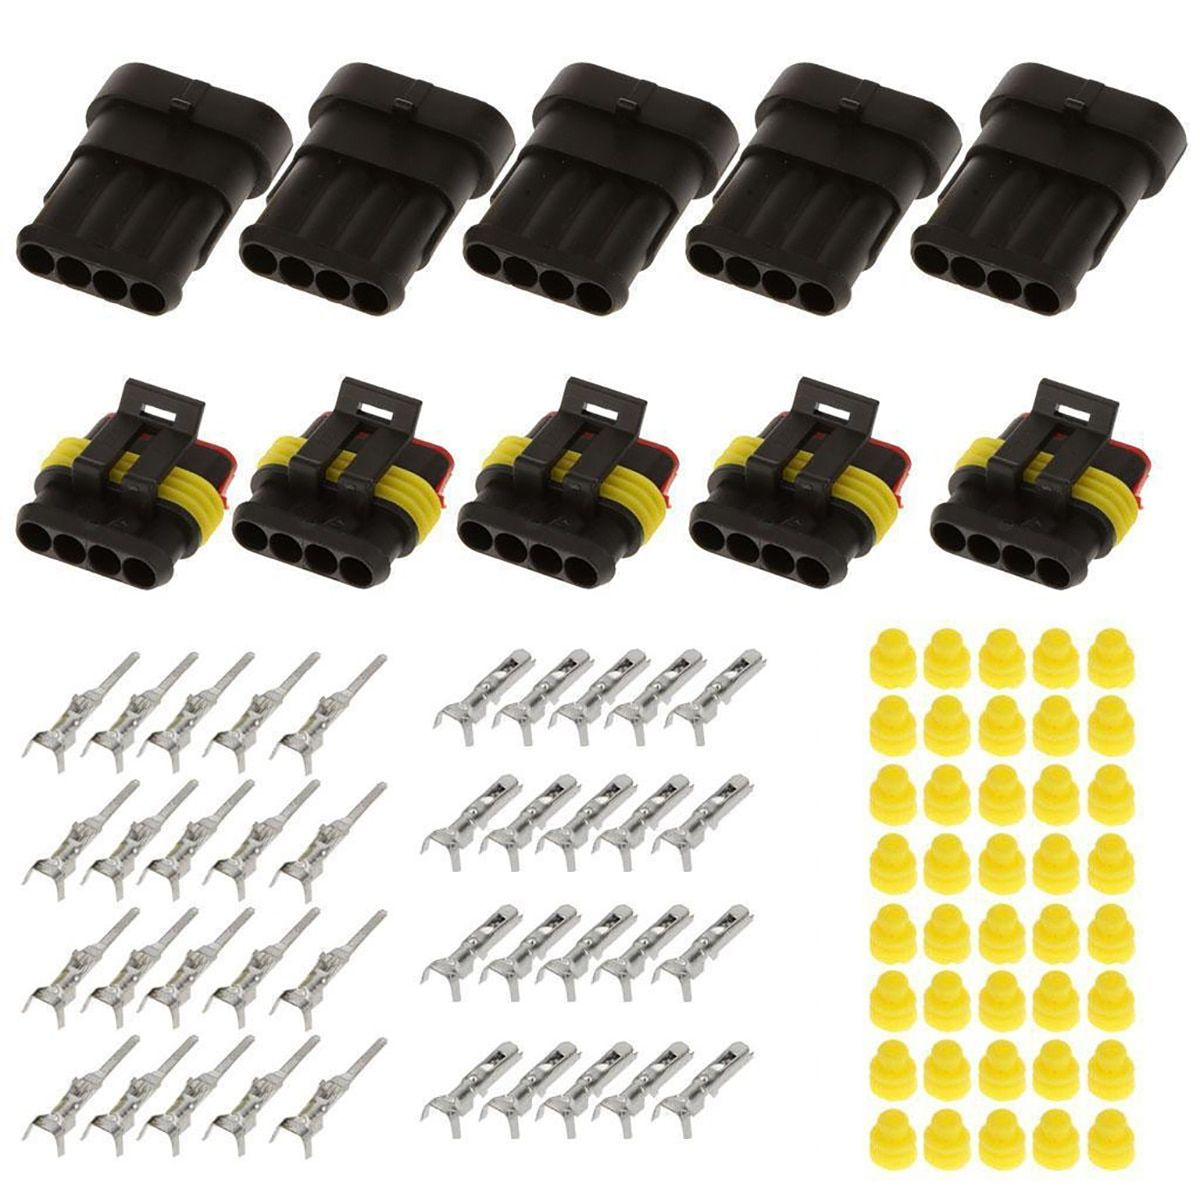 15 Sets 2 3 4 Pins Waterproof Electrical Wire Connector IP68 Motocycle Car Auto Sealed Plug